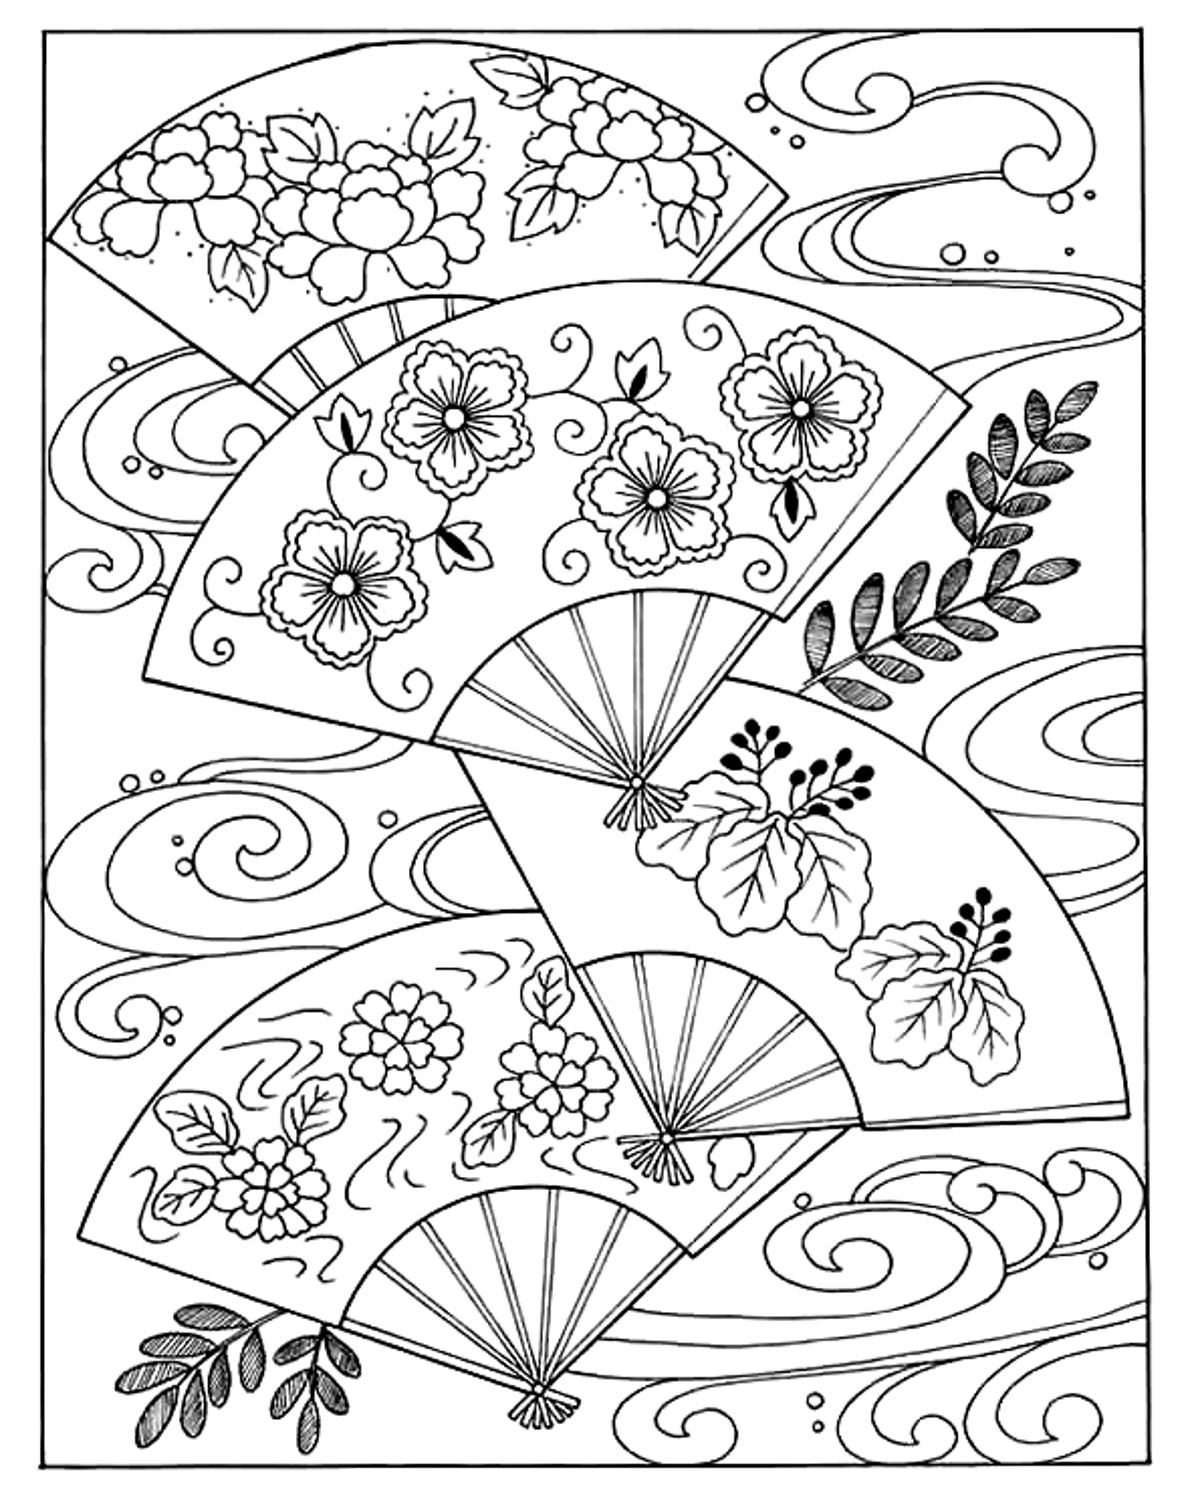 Japanese hand fan - Japan Adult Coloring Pages